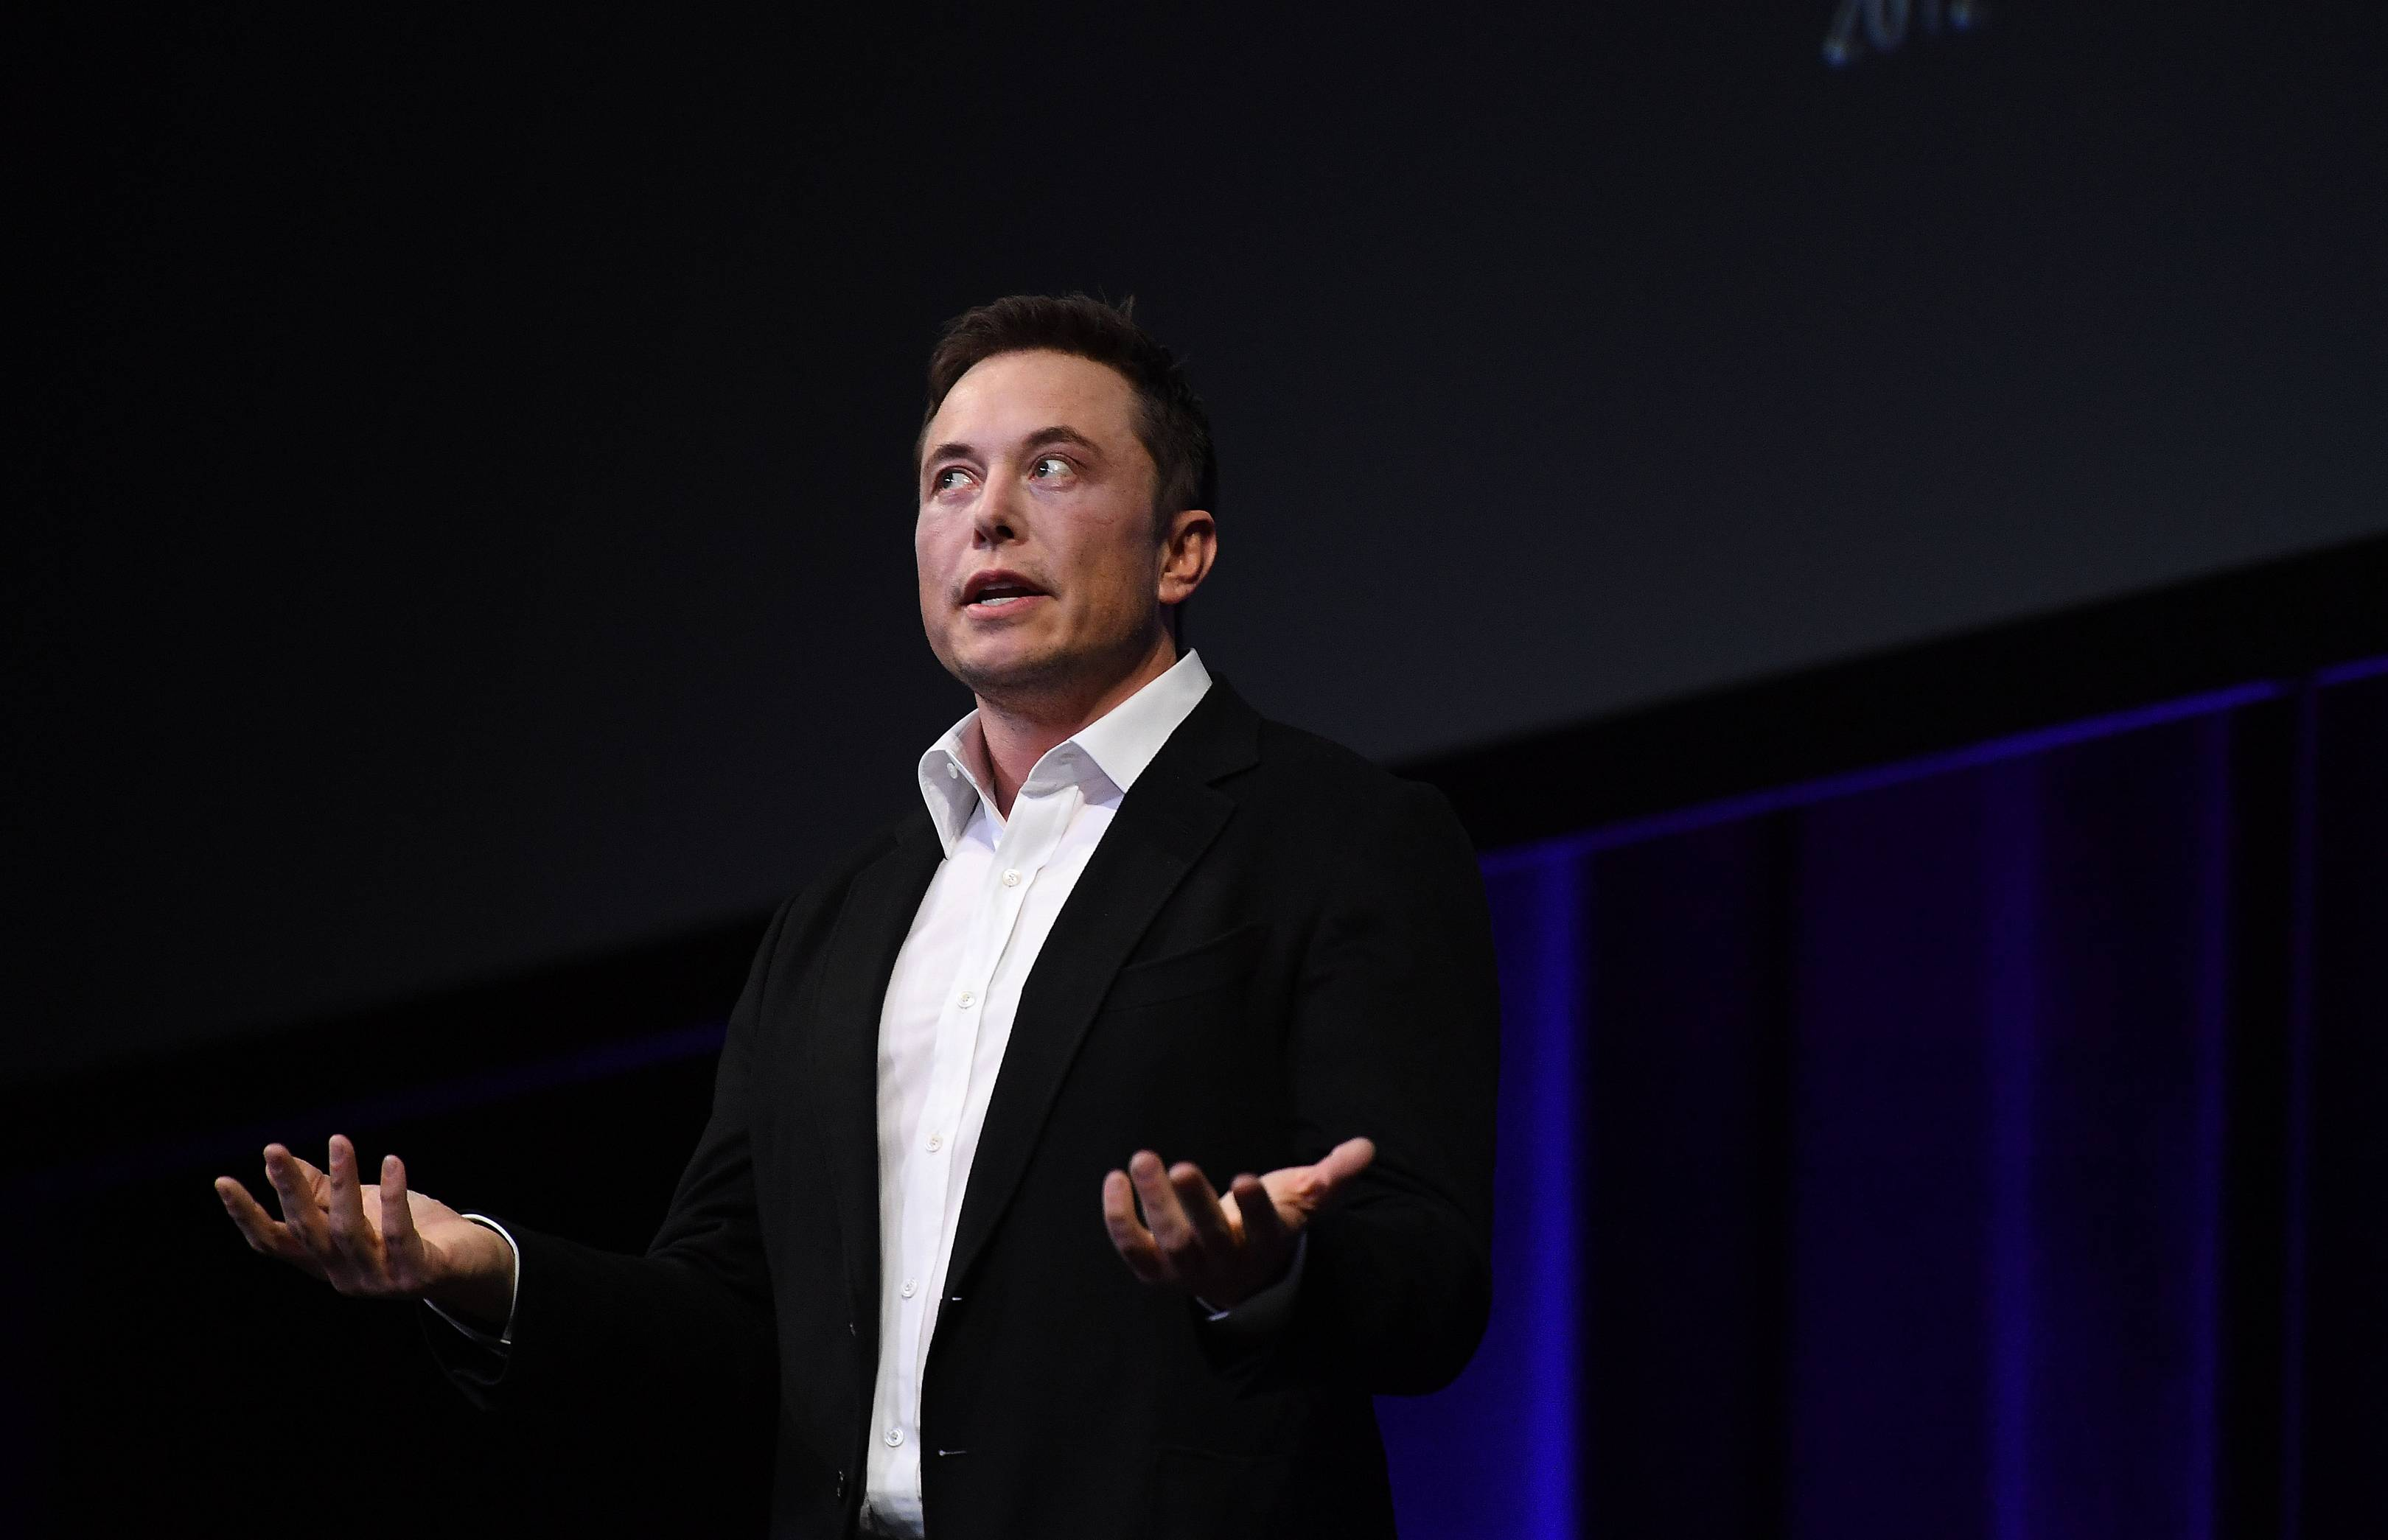 Monday briefing: Elon Musk steps down as Tesla chair in SEC fraud settlement